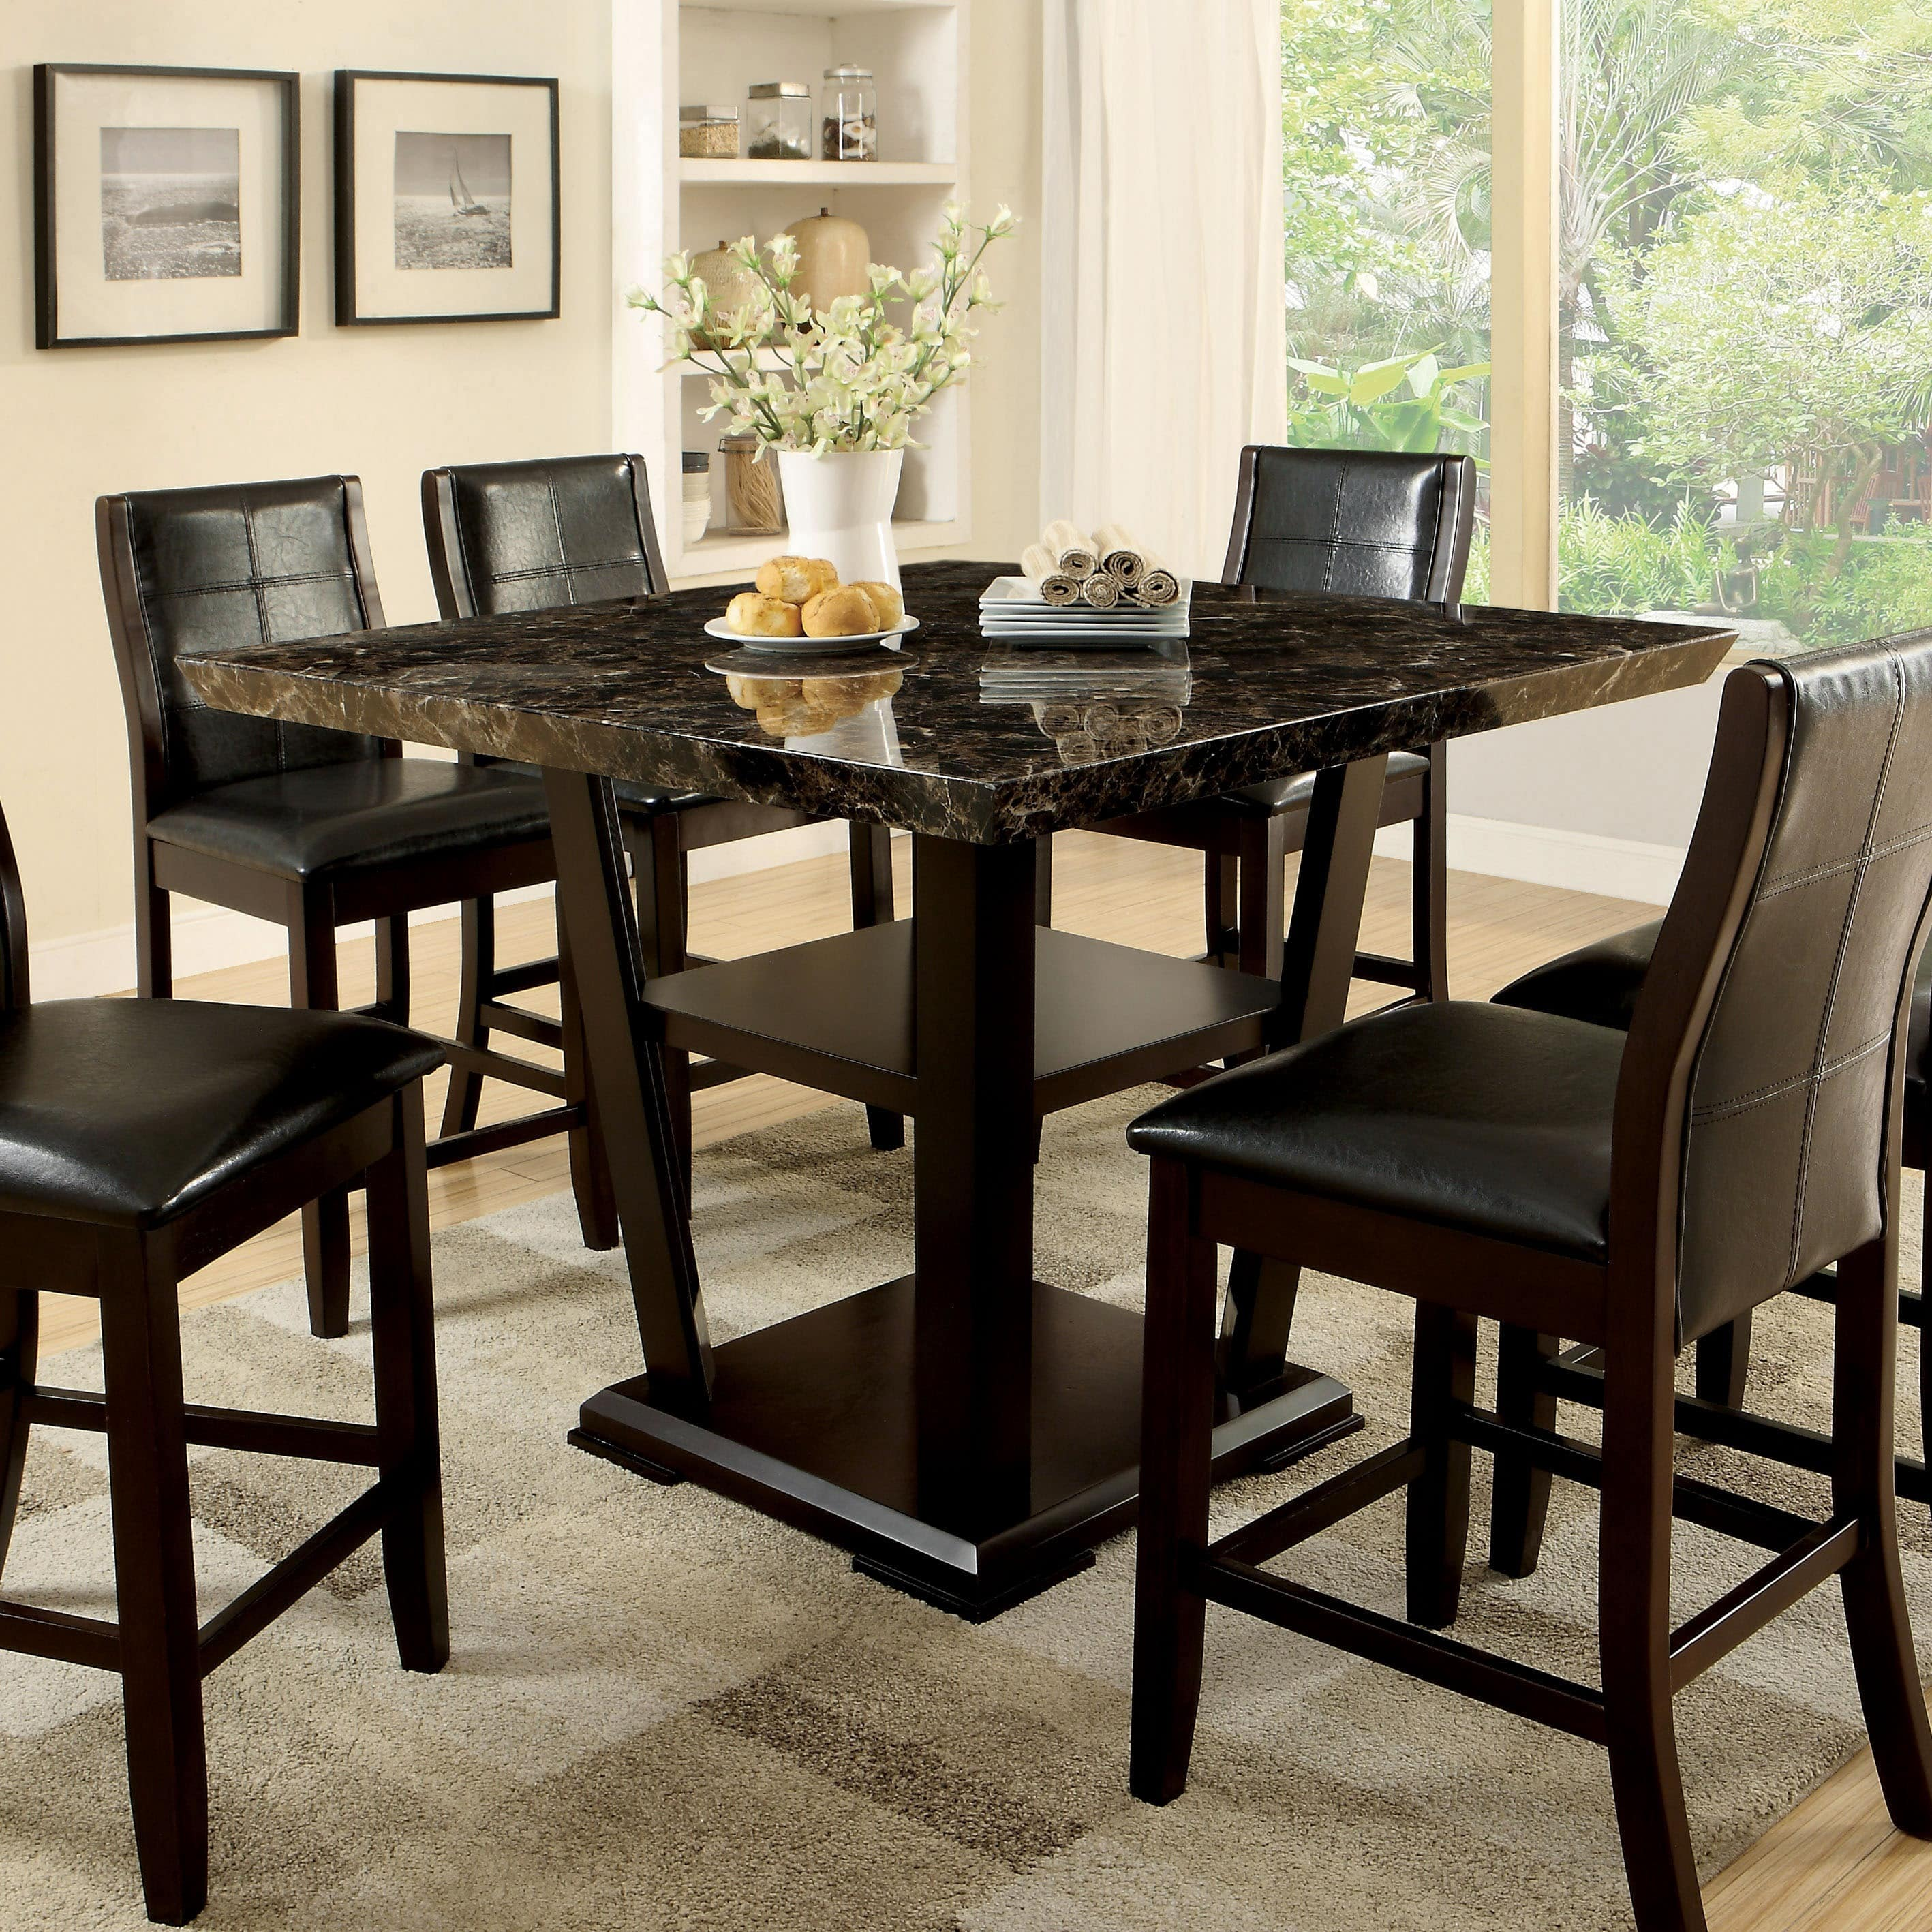 Furniture of America  Elivia Modern Faux Marble Counter Height Table - Cherry